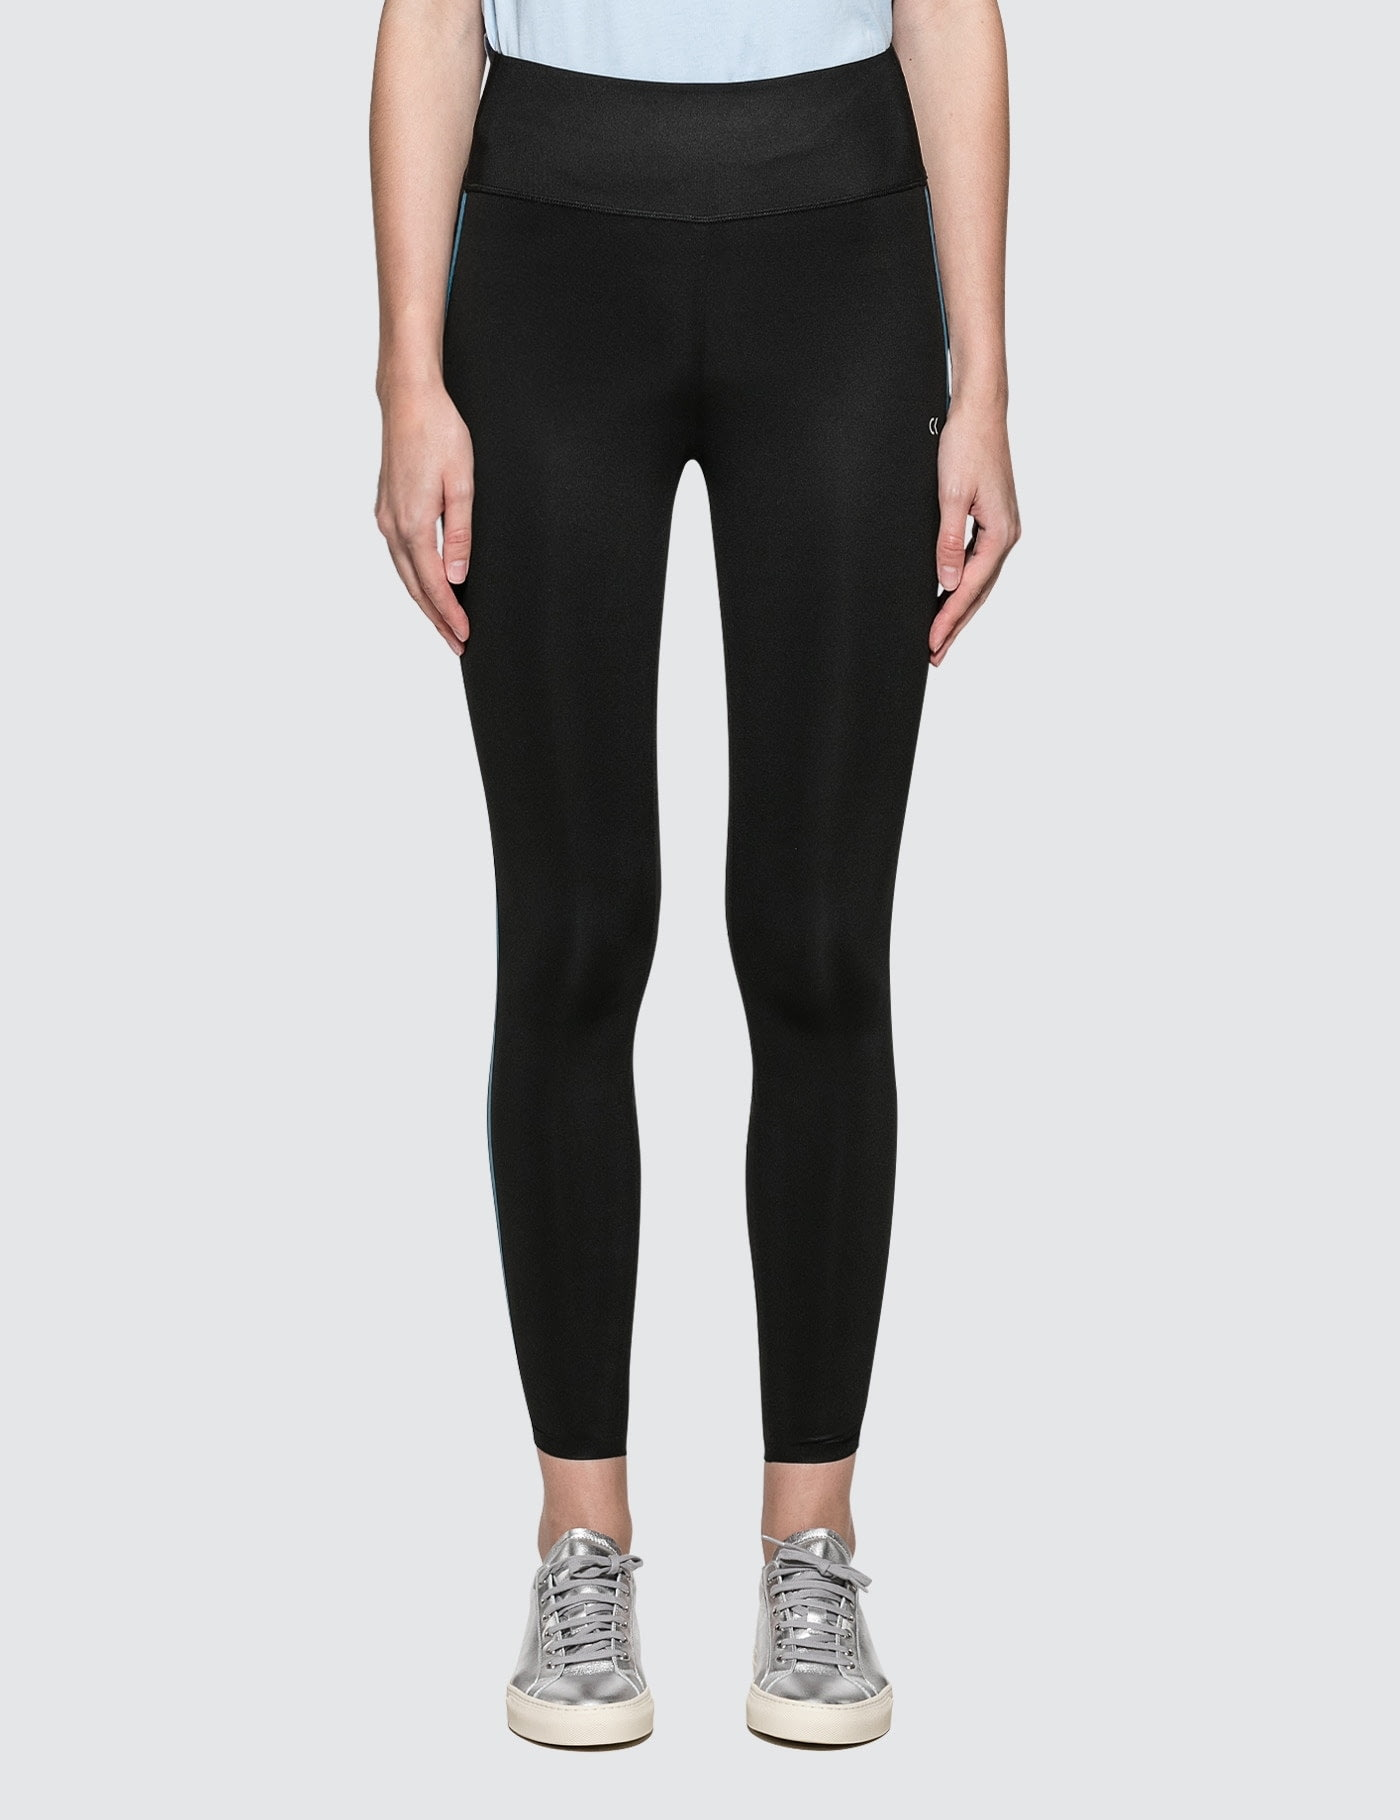 30c4d3e005 Buy Original Calvin Klein Performance Bondfl Leggings at Indonesia ...